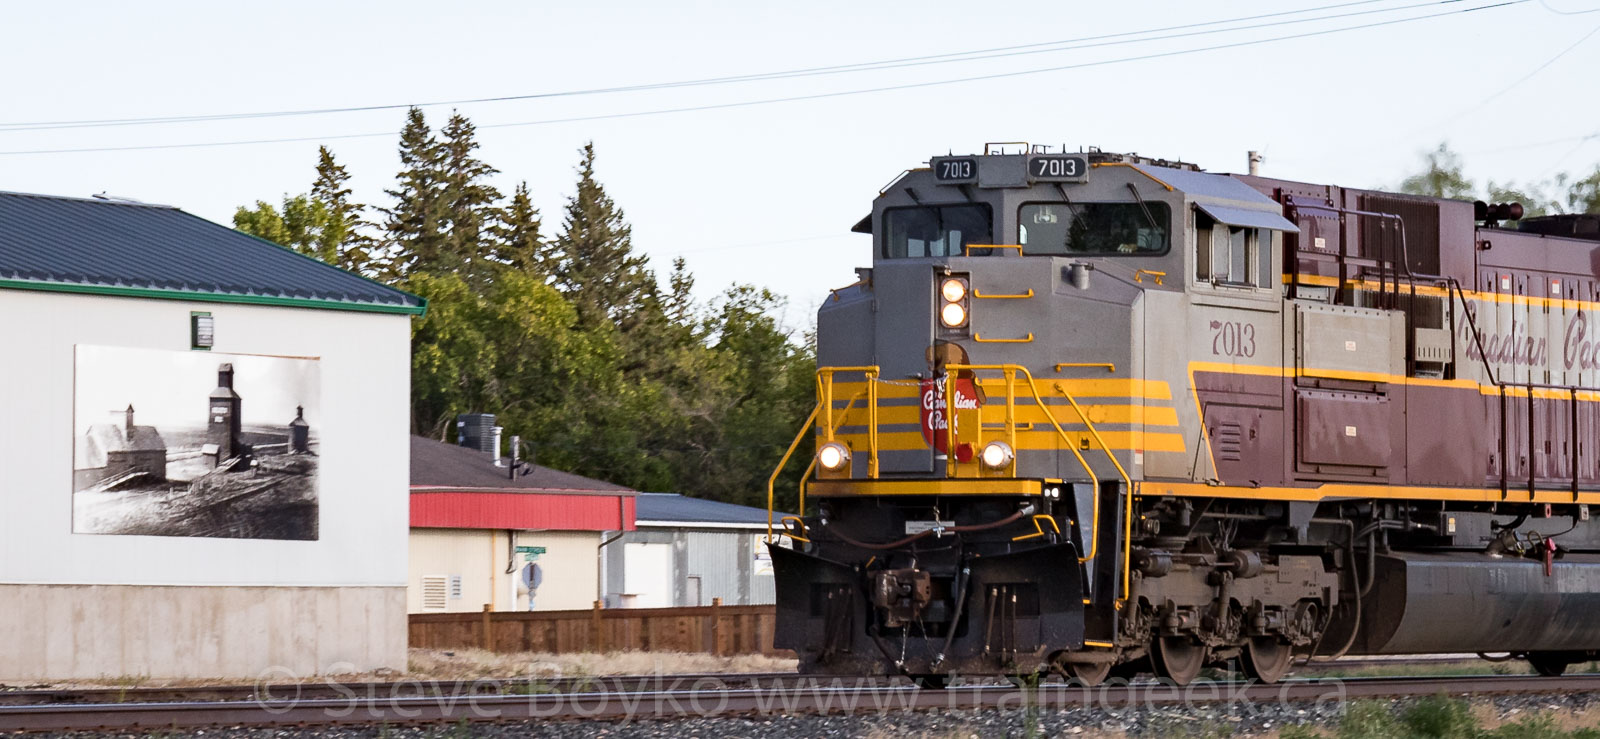 CP 7013 passing the heritage display in Niverville